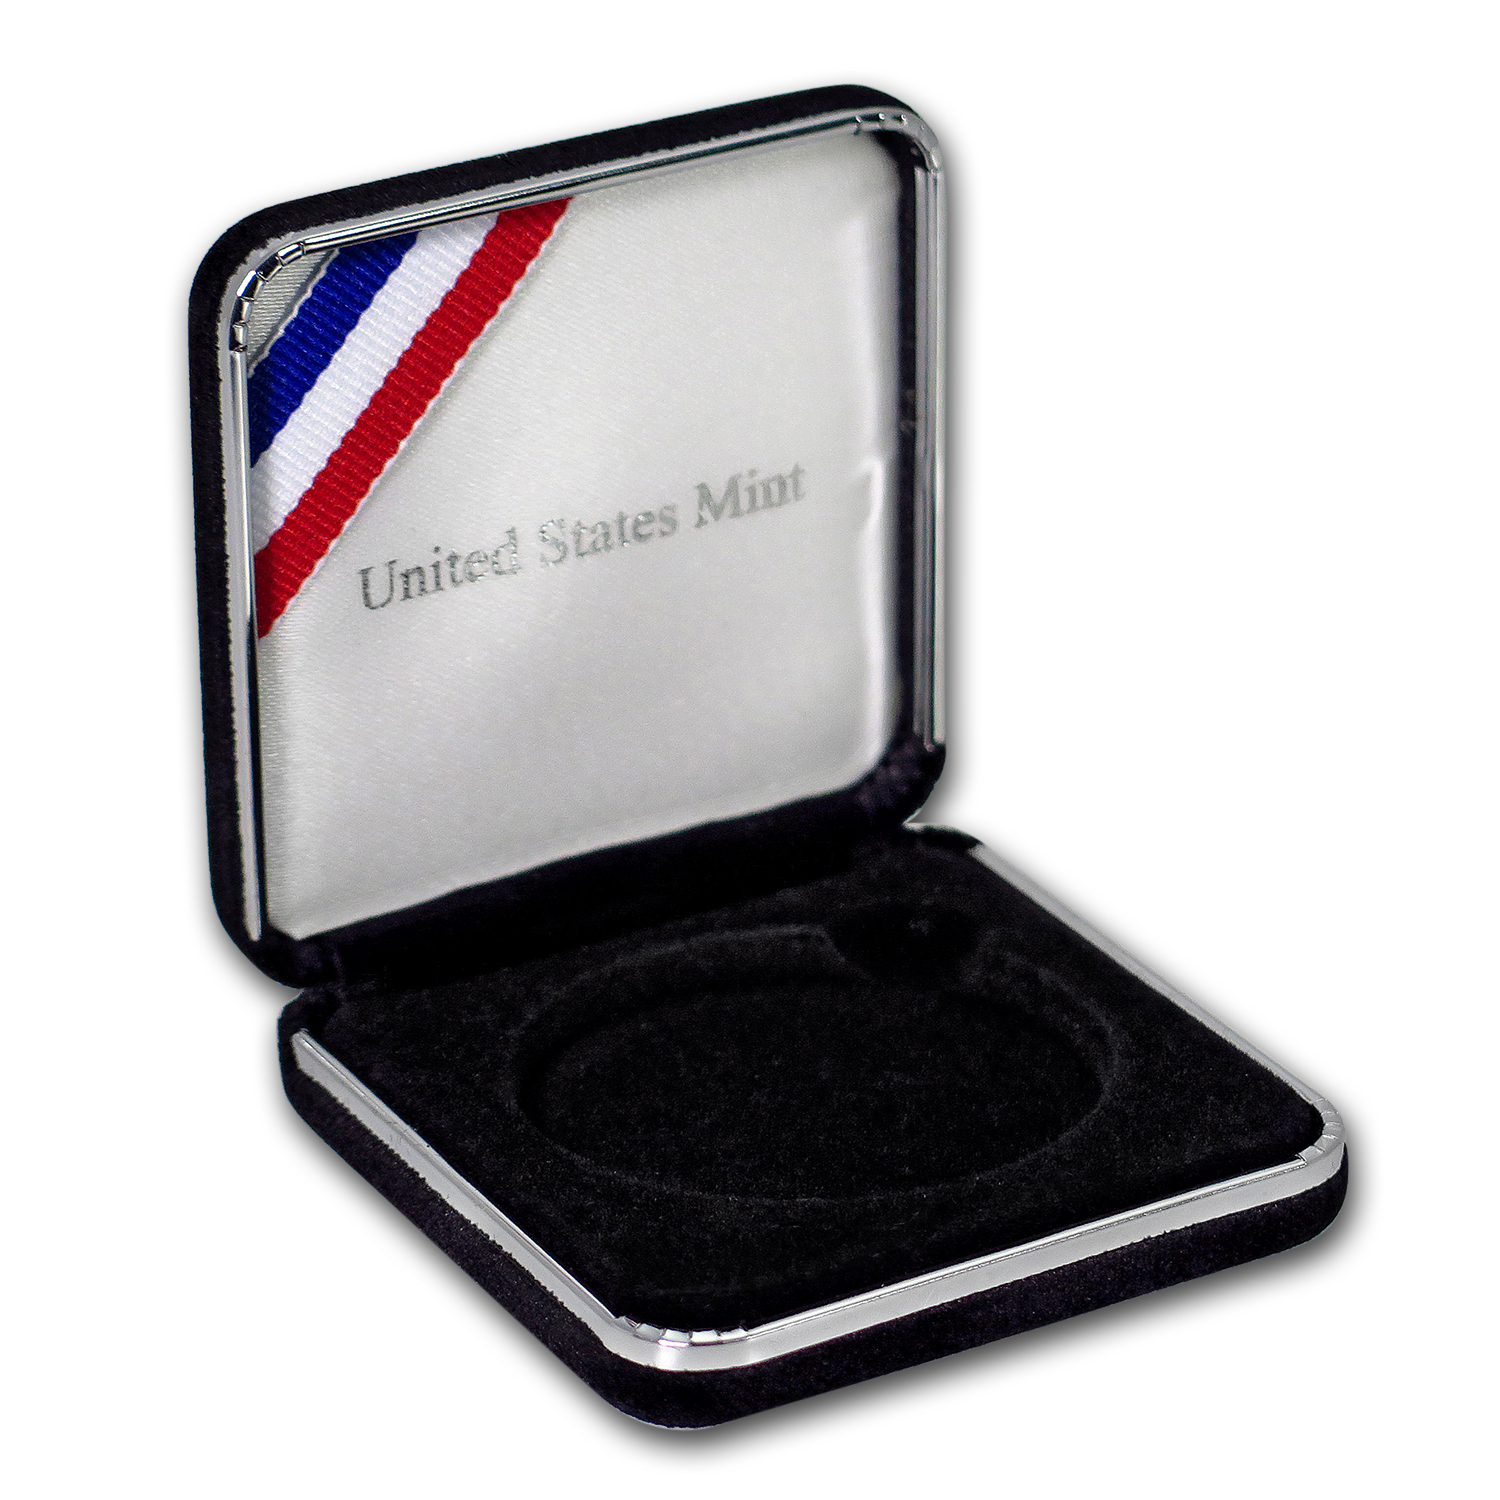 OGP Box & COA - 2011 U.S. Mint 9/11 National Medal Proof